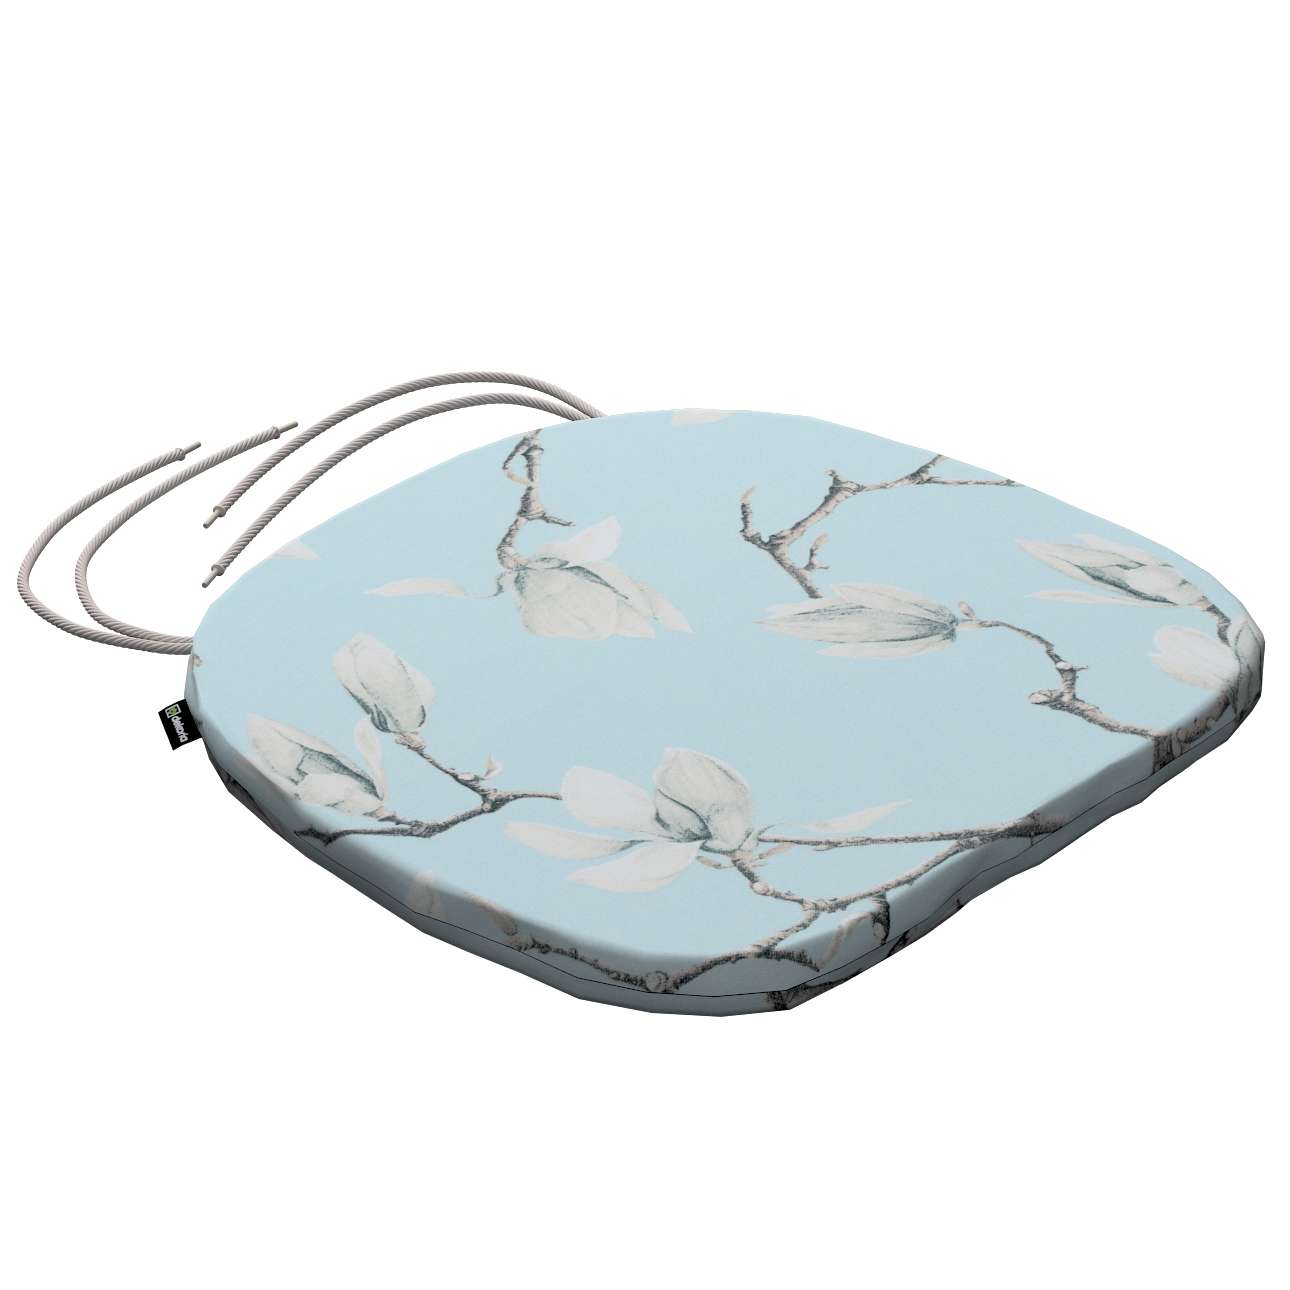 Bart seat pad with ties in collection Flowers, fabric: 311-14